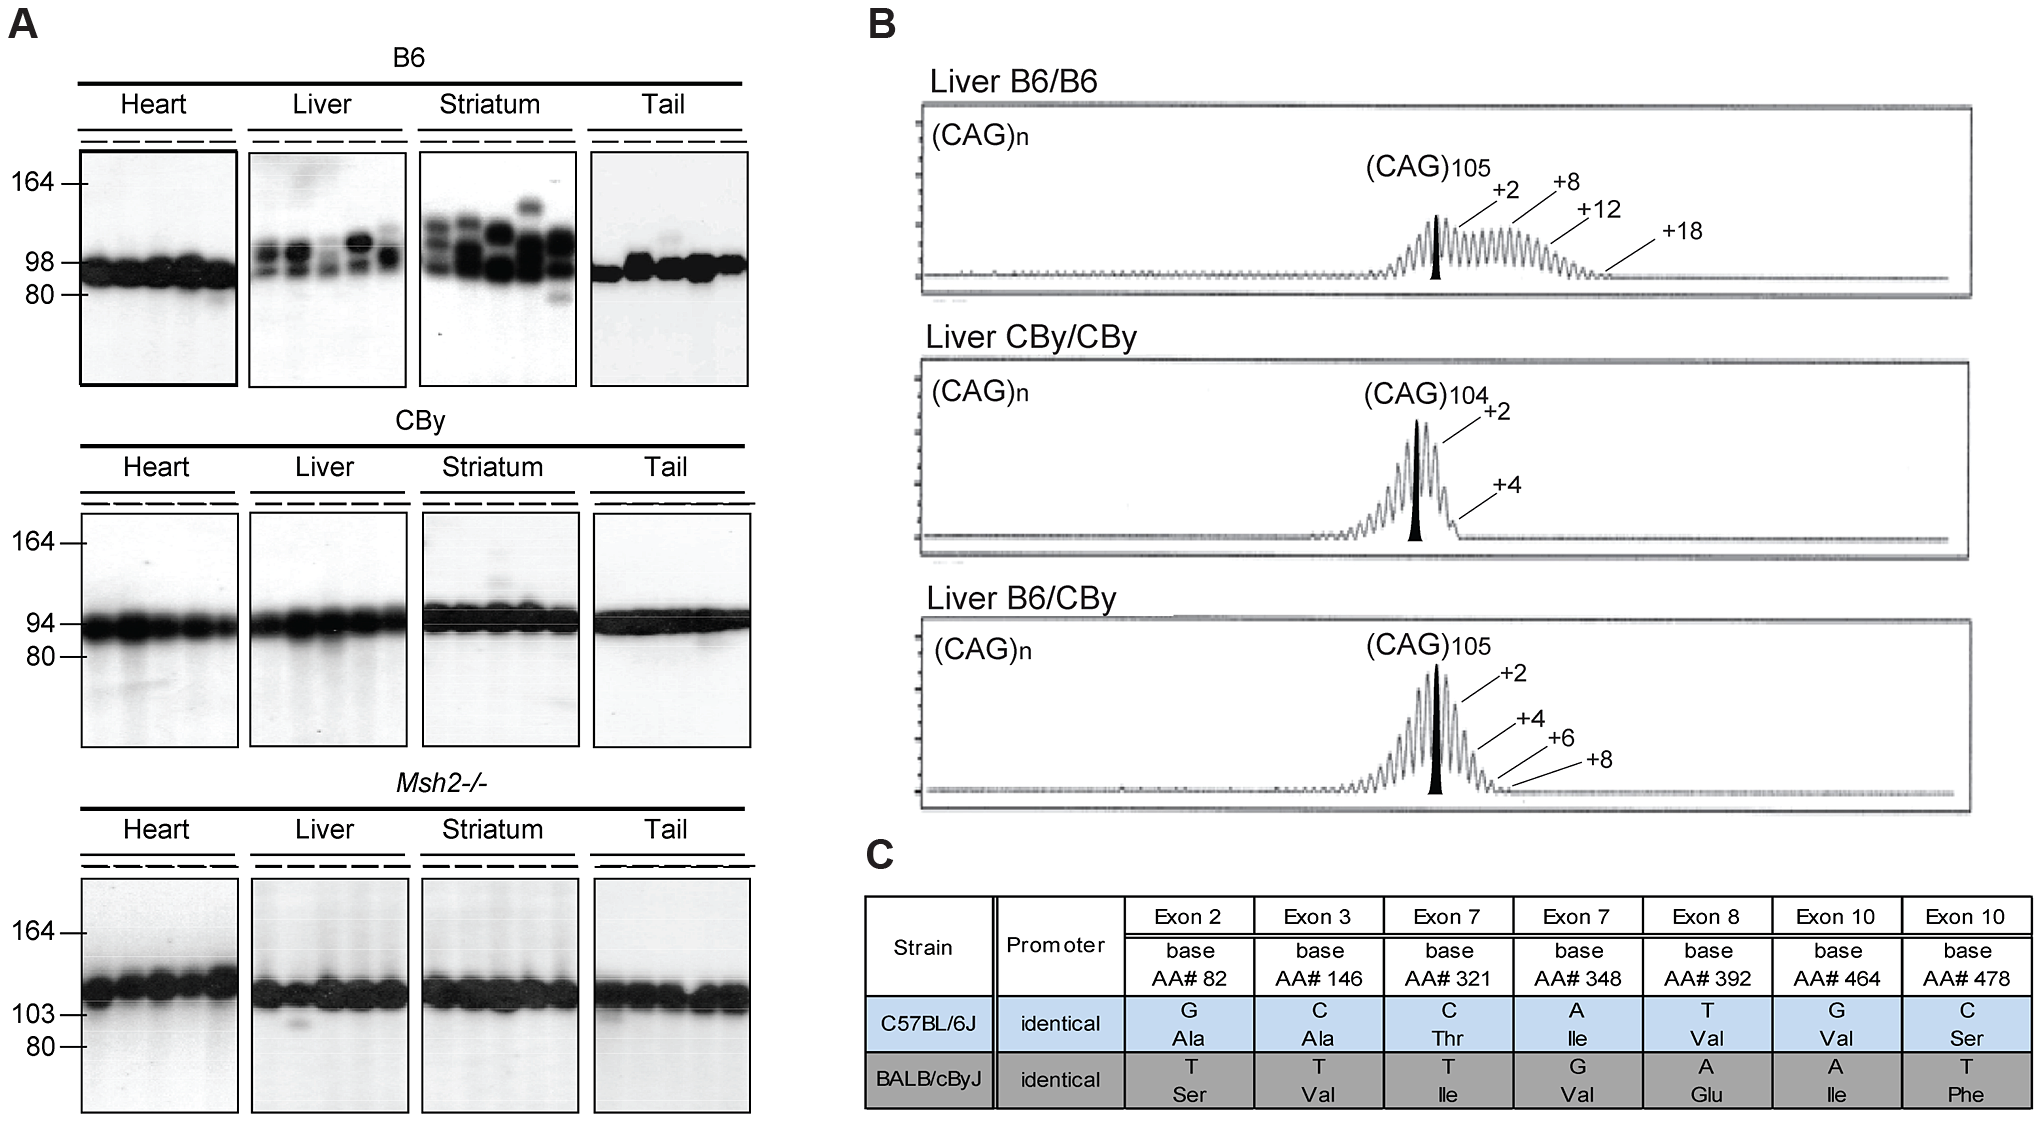 Representative CAG repeat distributions, and <i>Msh3</i> variations in B6 and CBy mice.